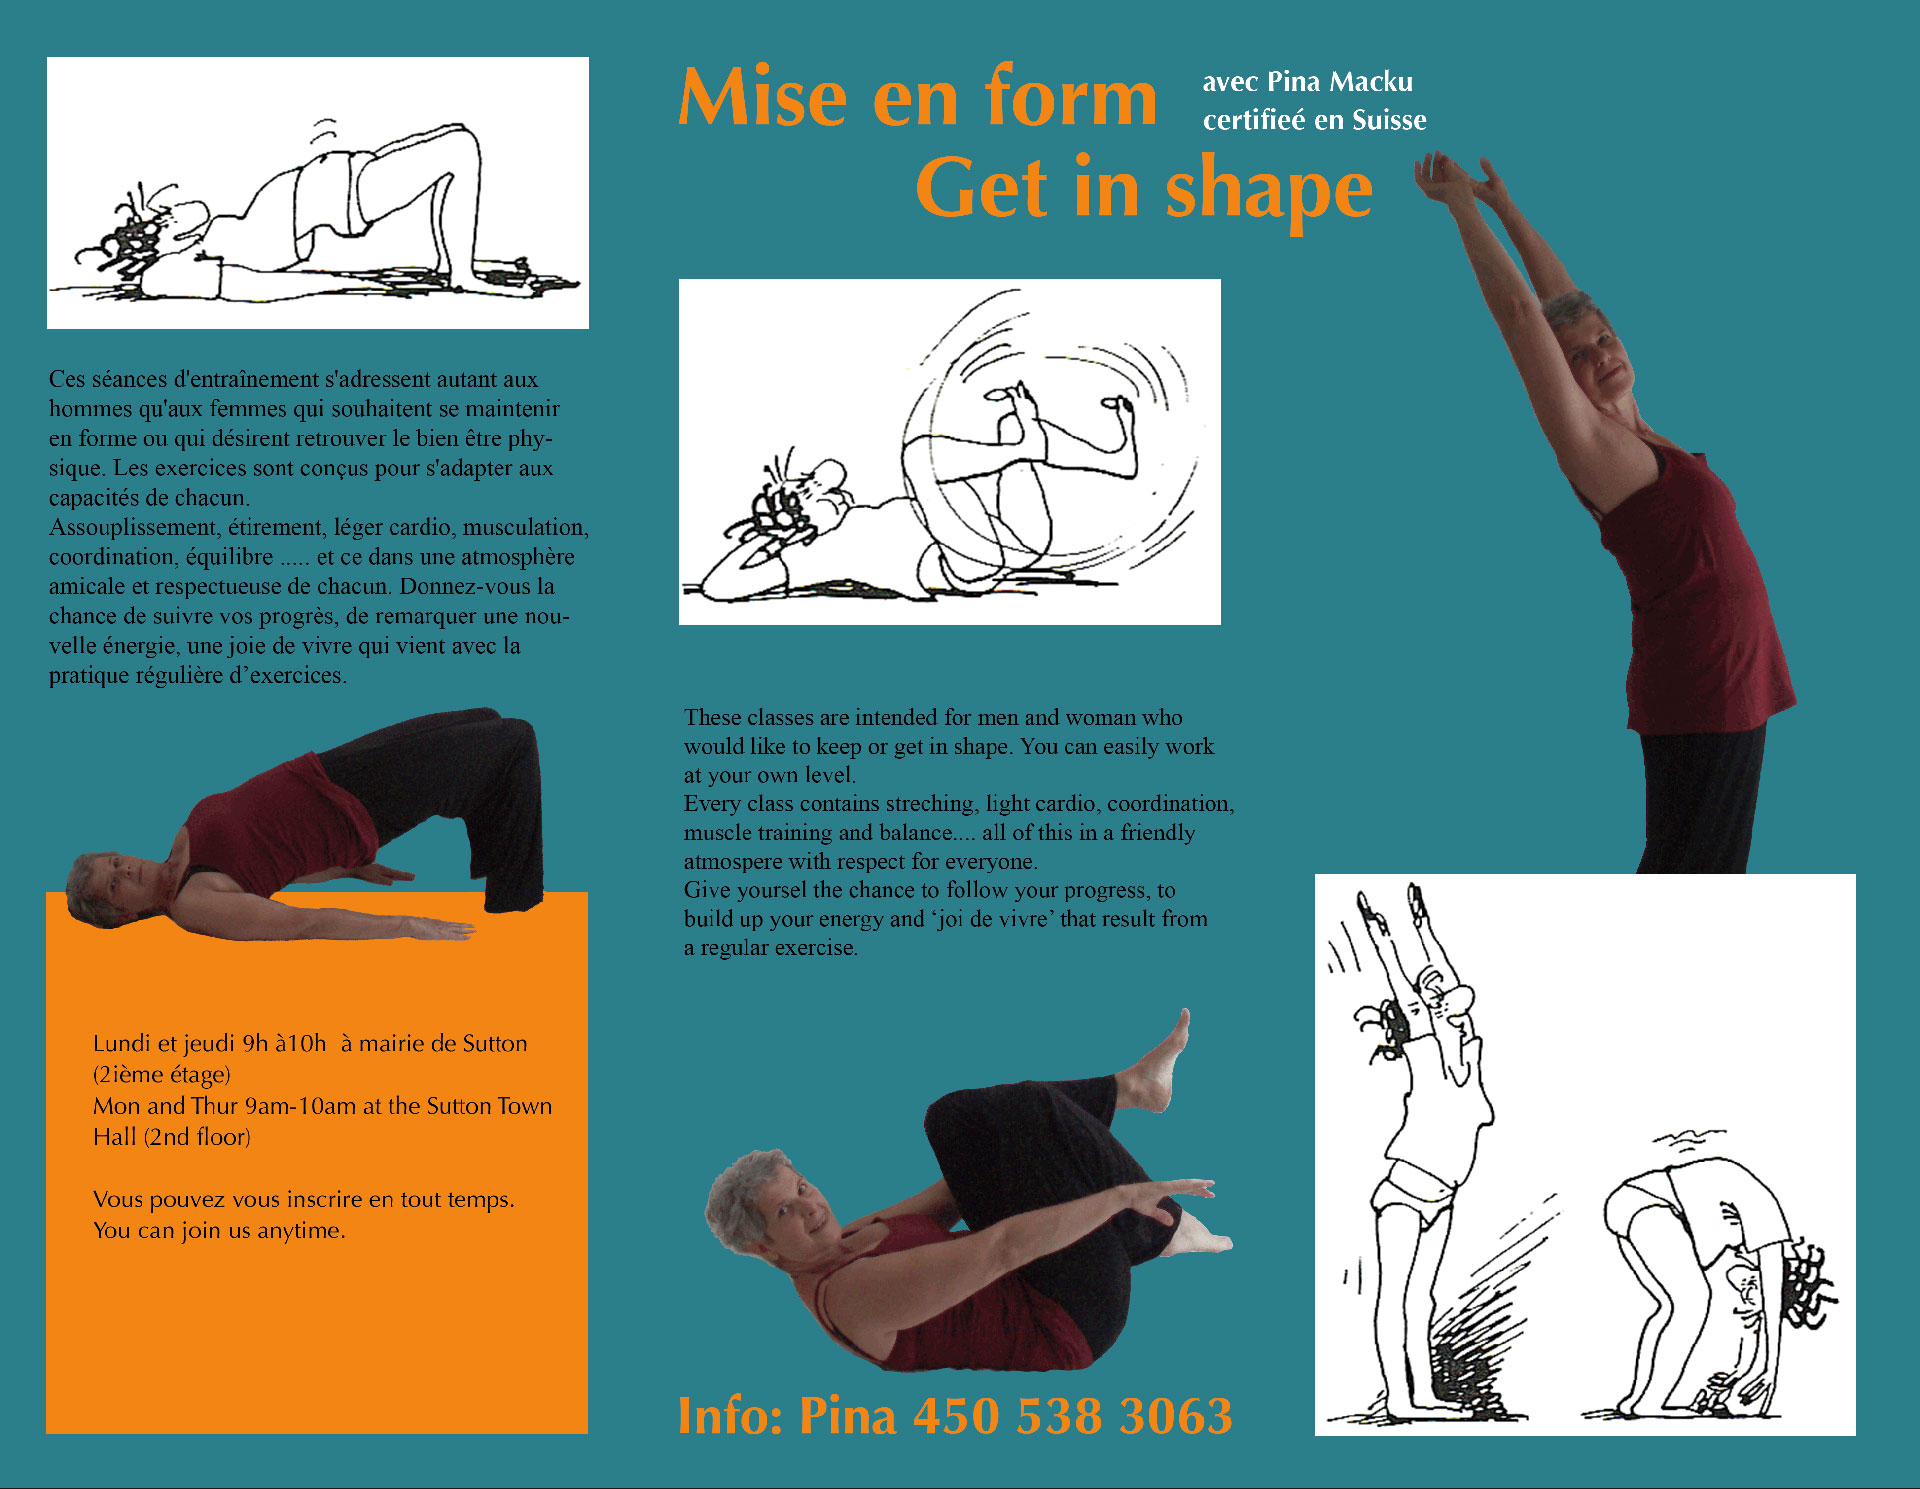 Mise en forme - Get in shape with Pina